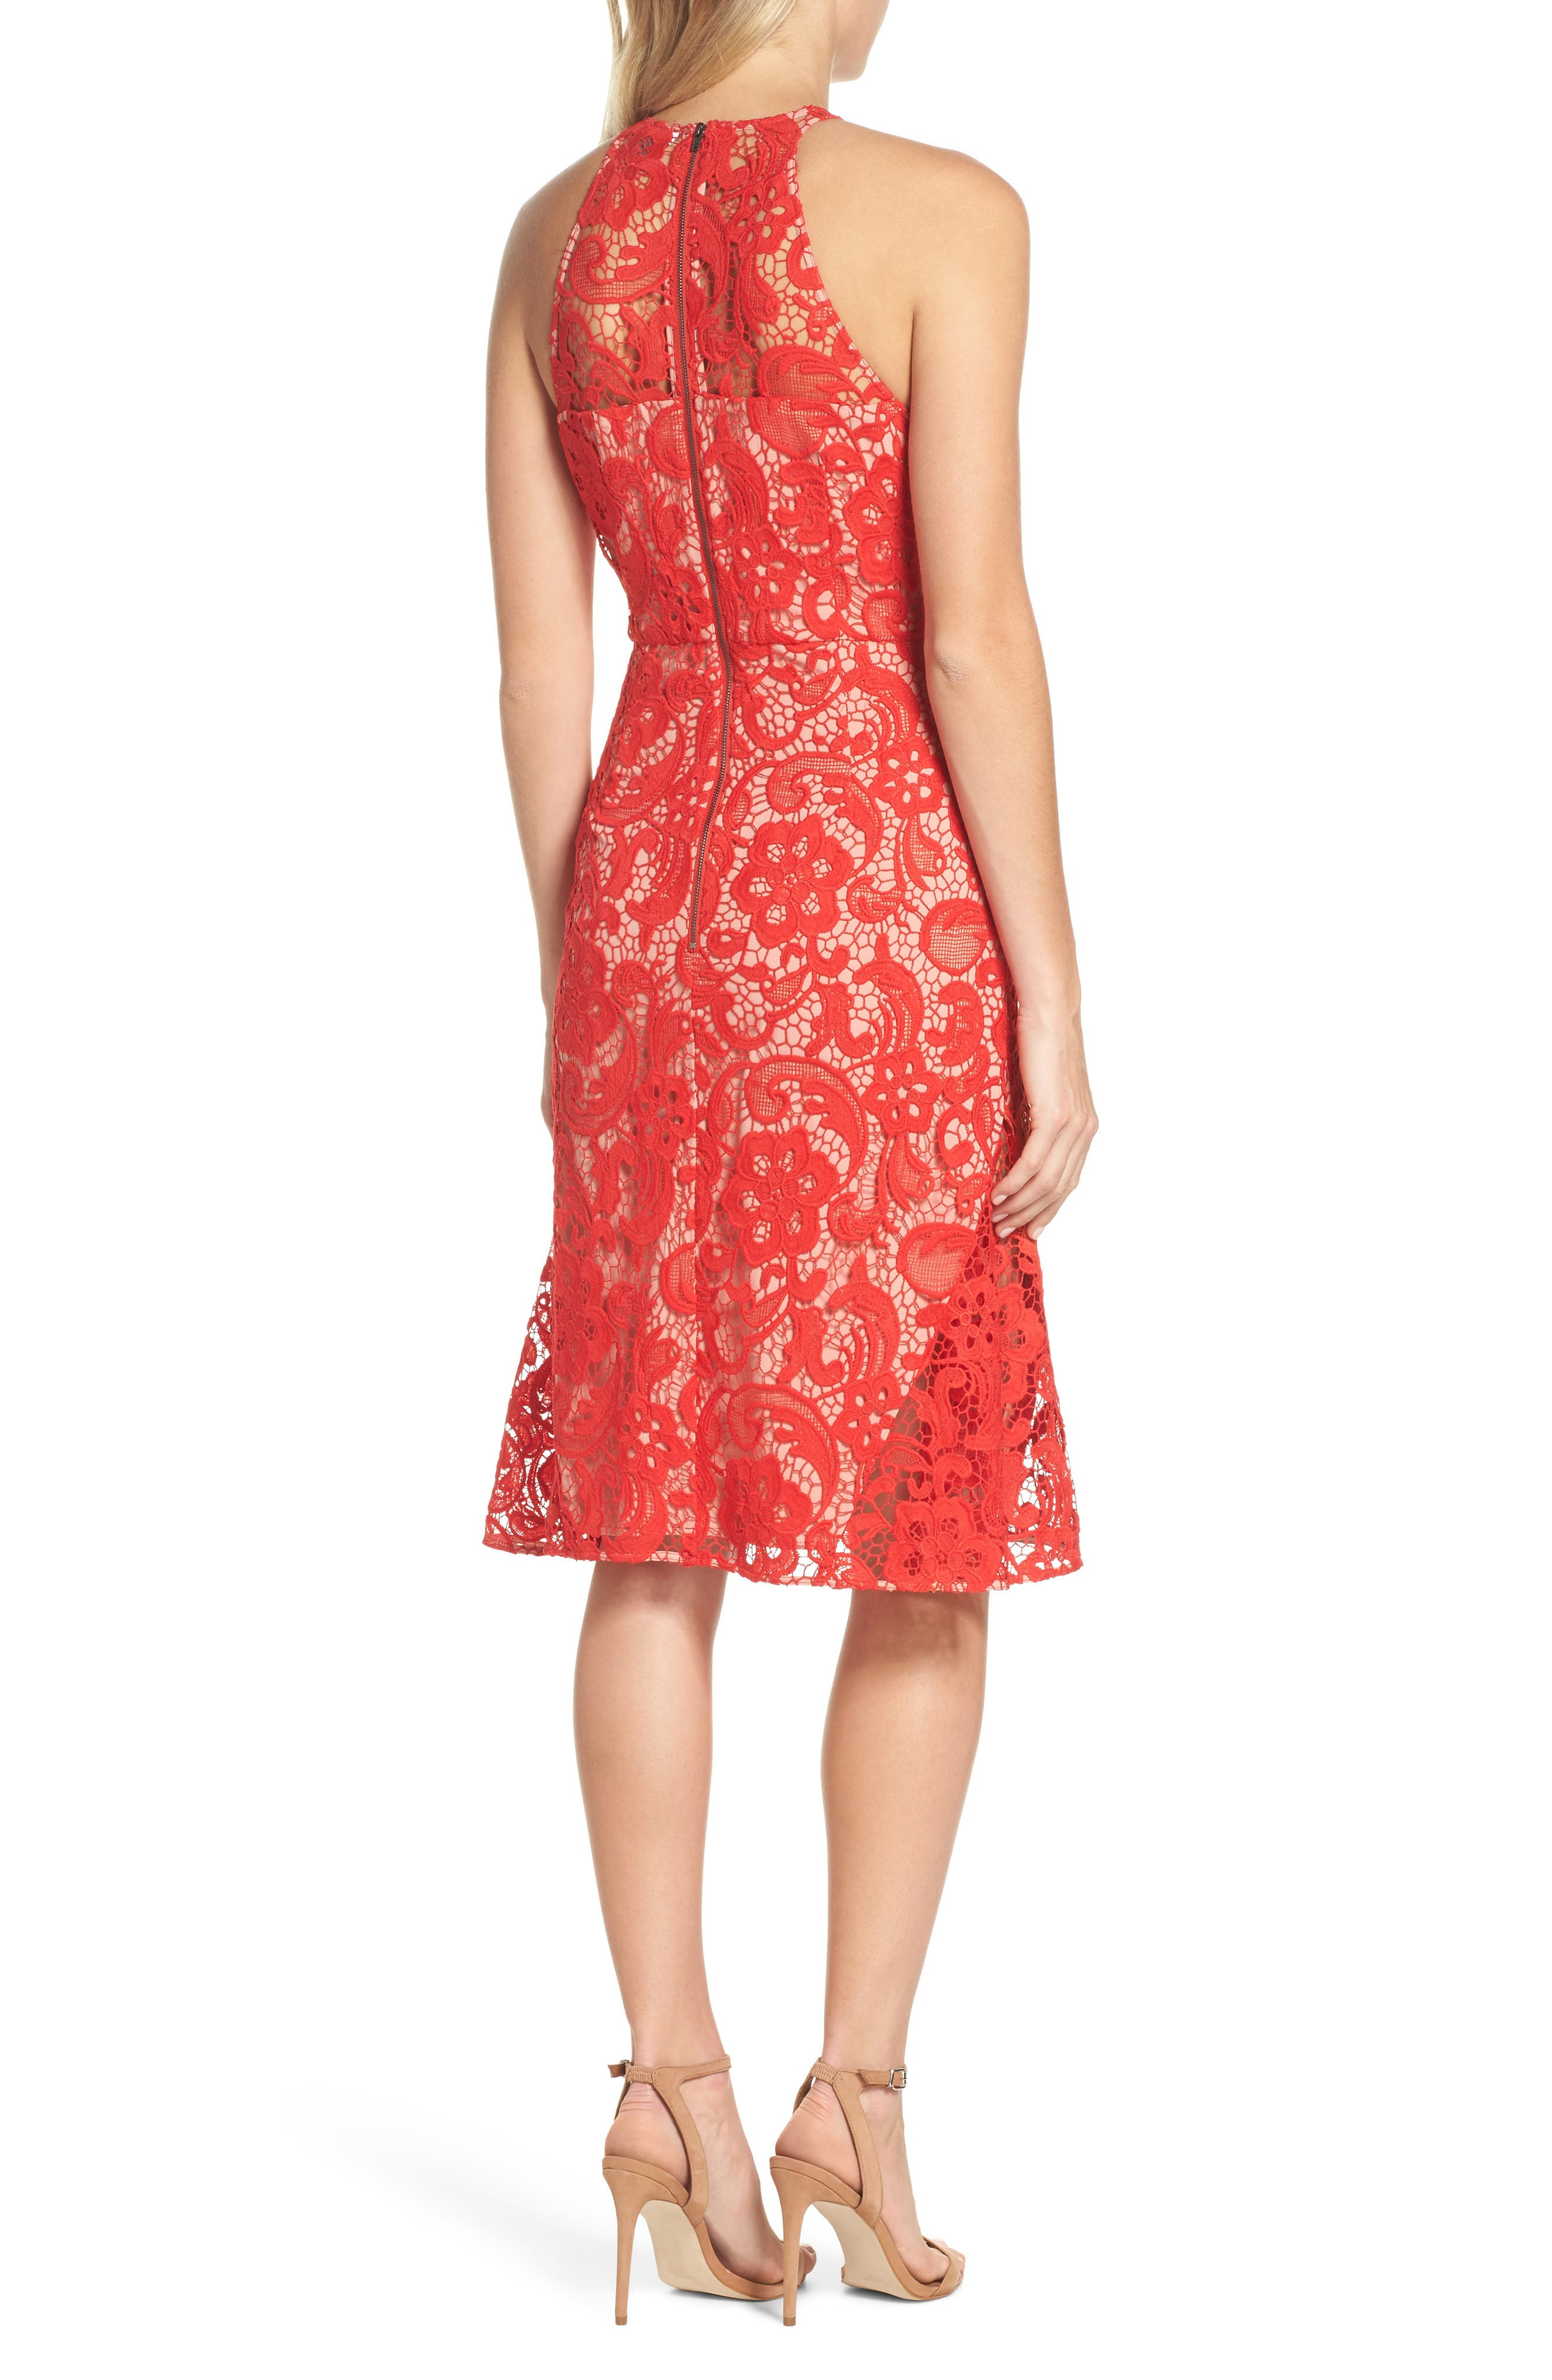 Carnation Lace Dress,                             Alternate thumbnail 2, color,                             Red Fiery